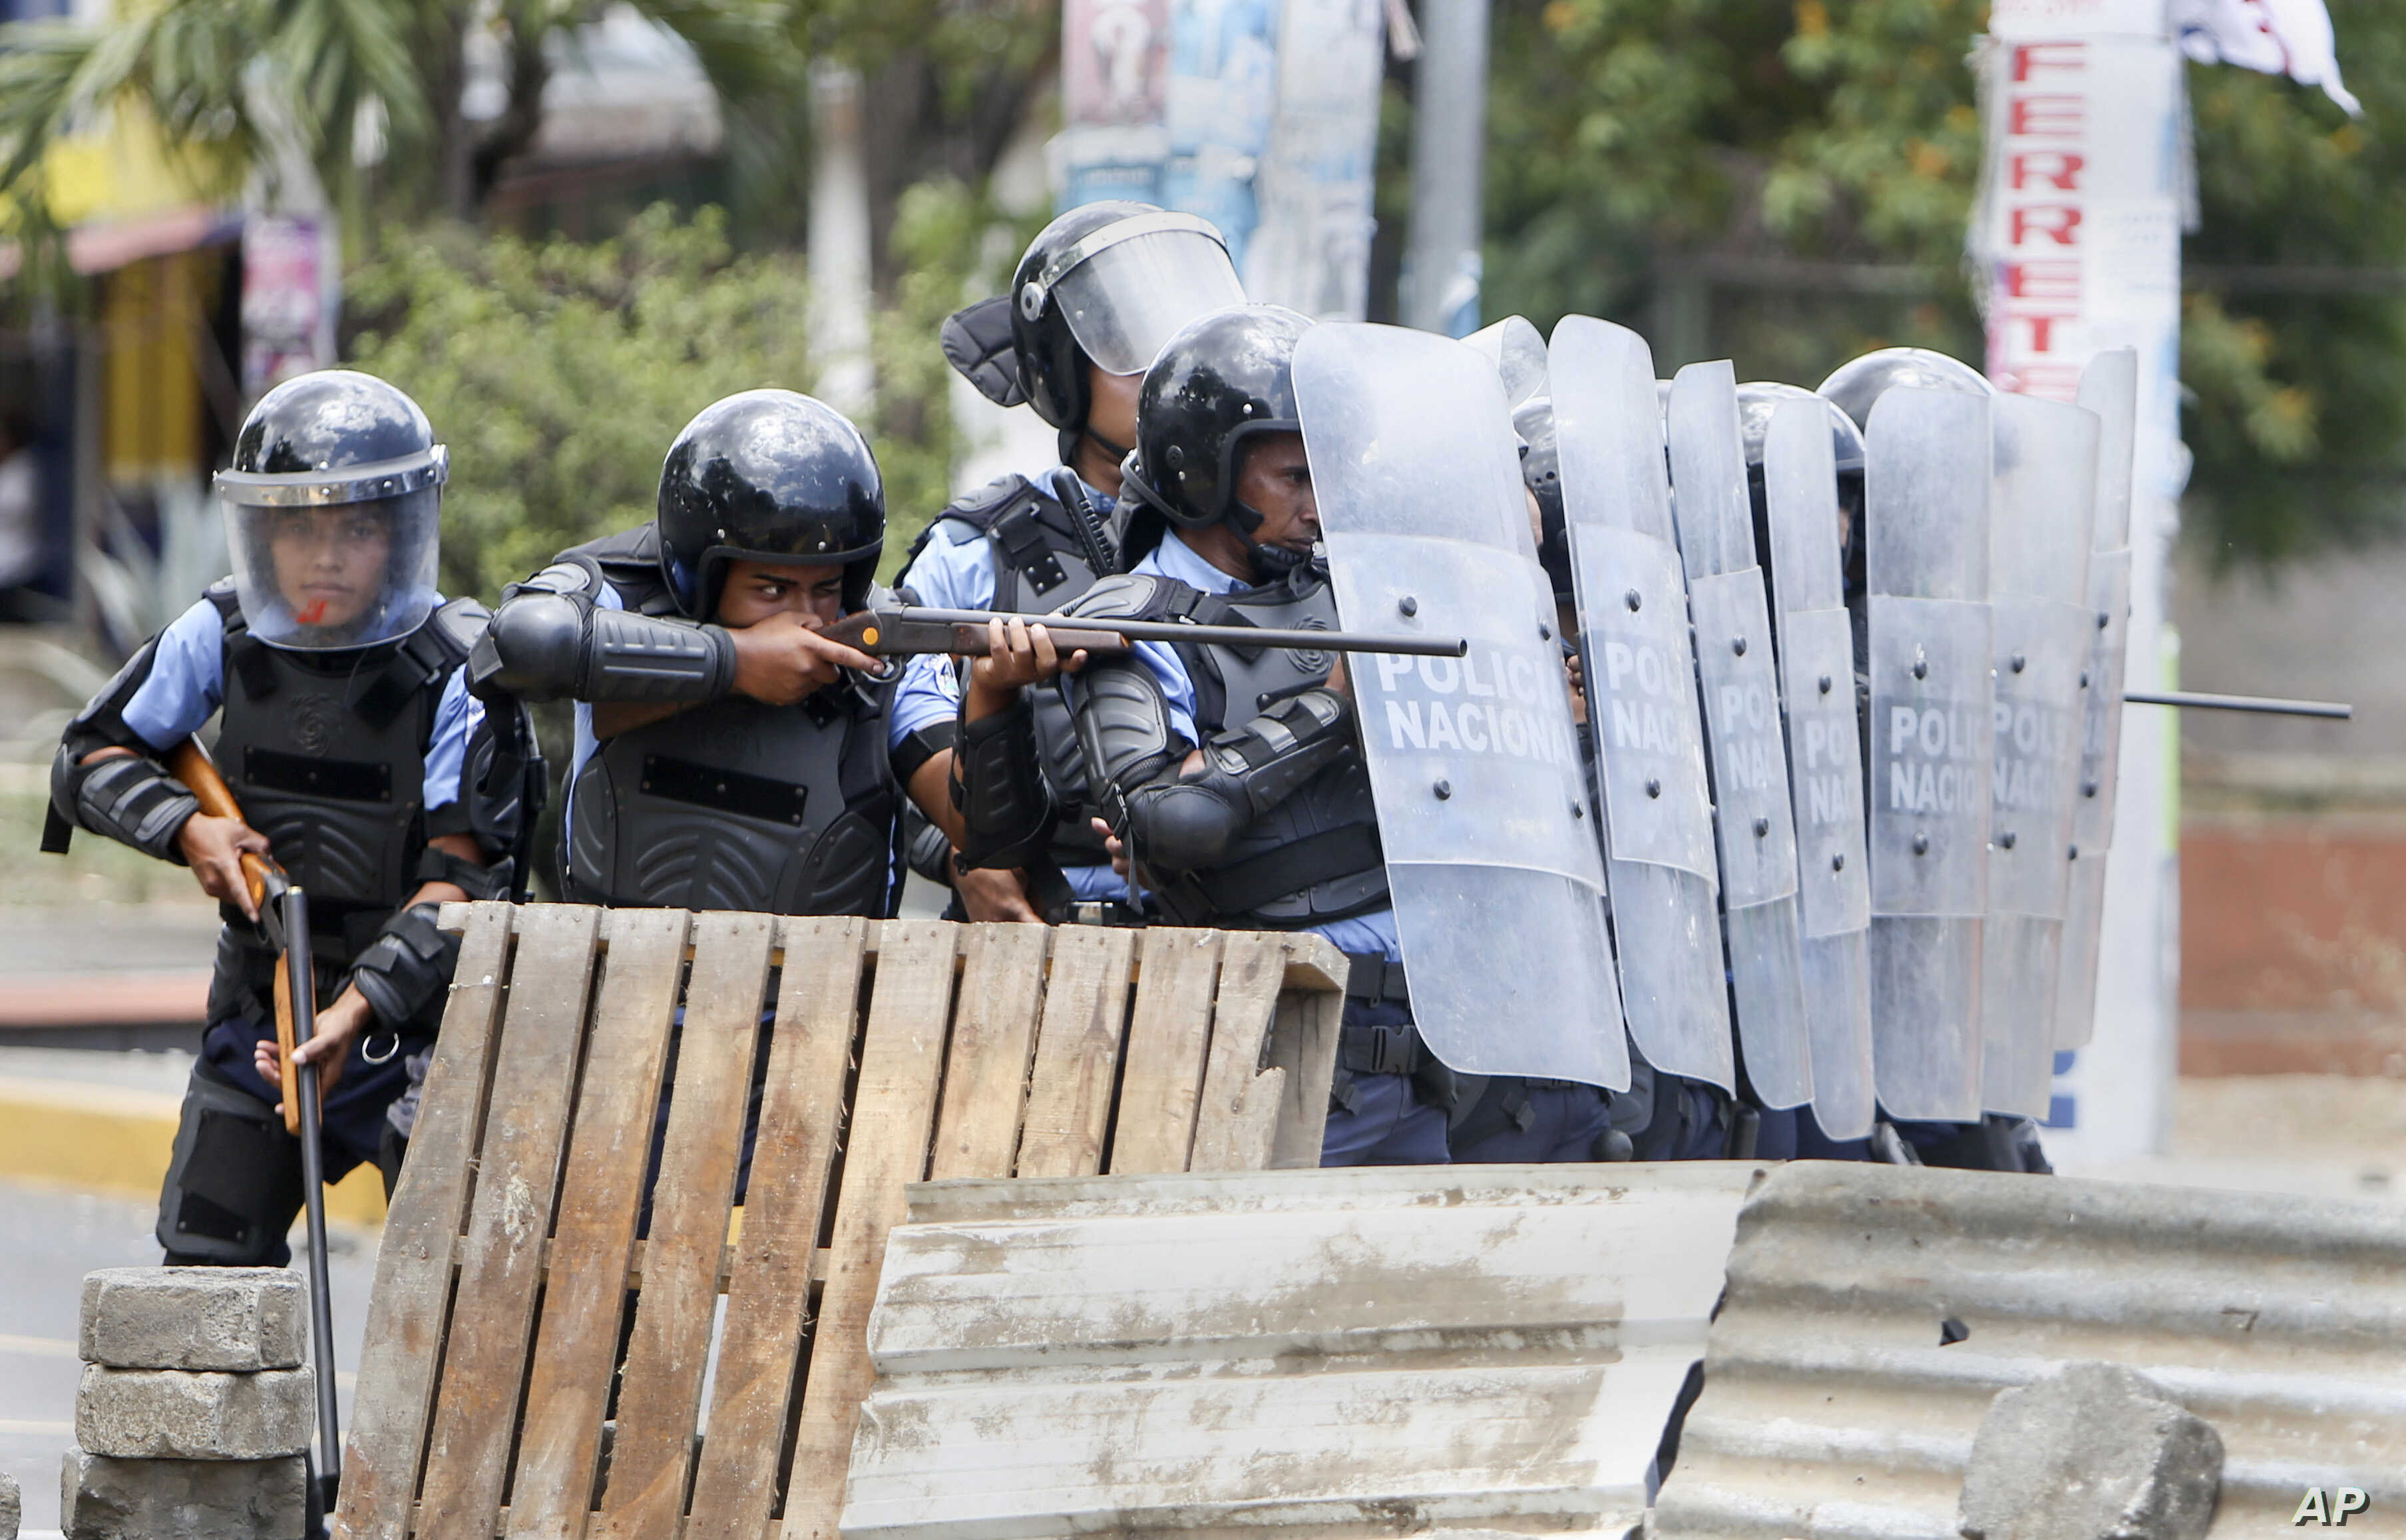 A Nicaraguan police officer aims his weapon at protesting students during a third day of violent clashes in Managua, Nicaragua, April 20, 2018. The Organization of American States have expressed concern over the heavy-handed crackdown, while also cal...